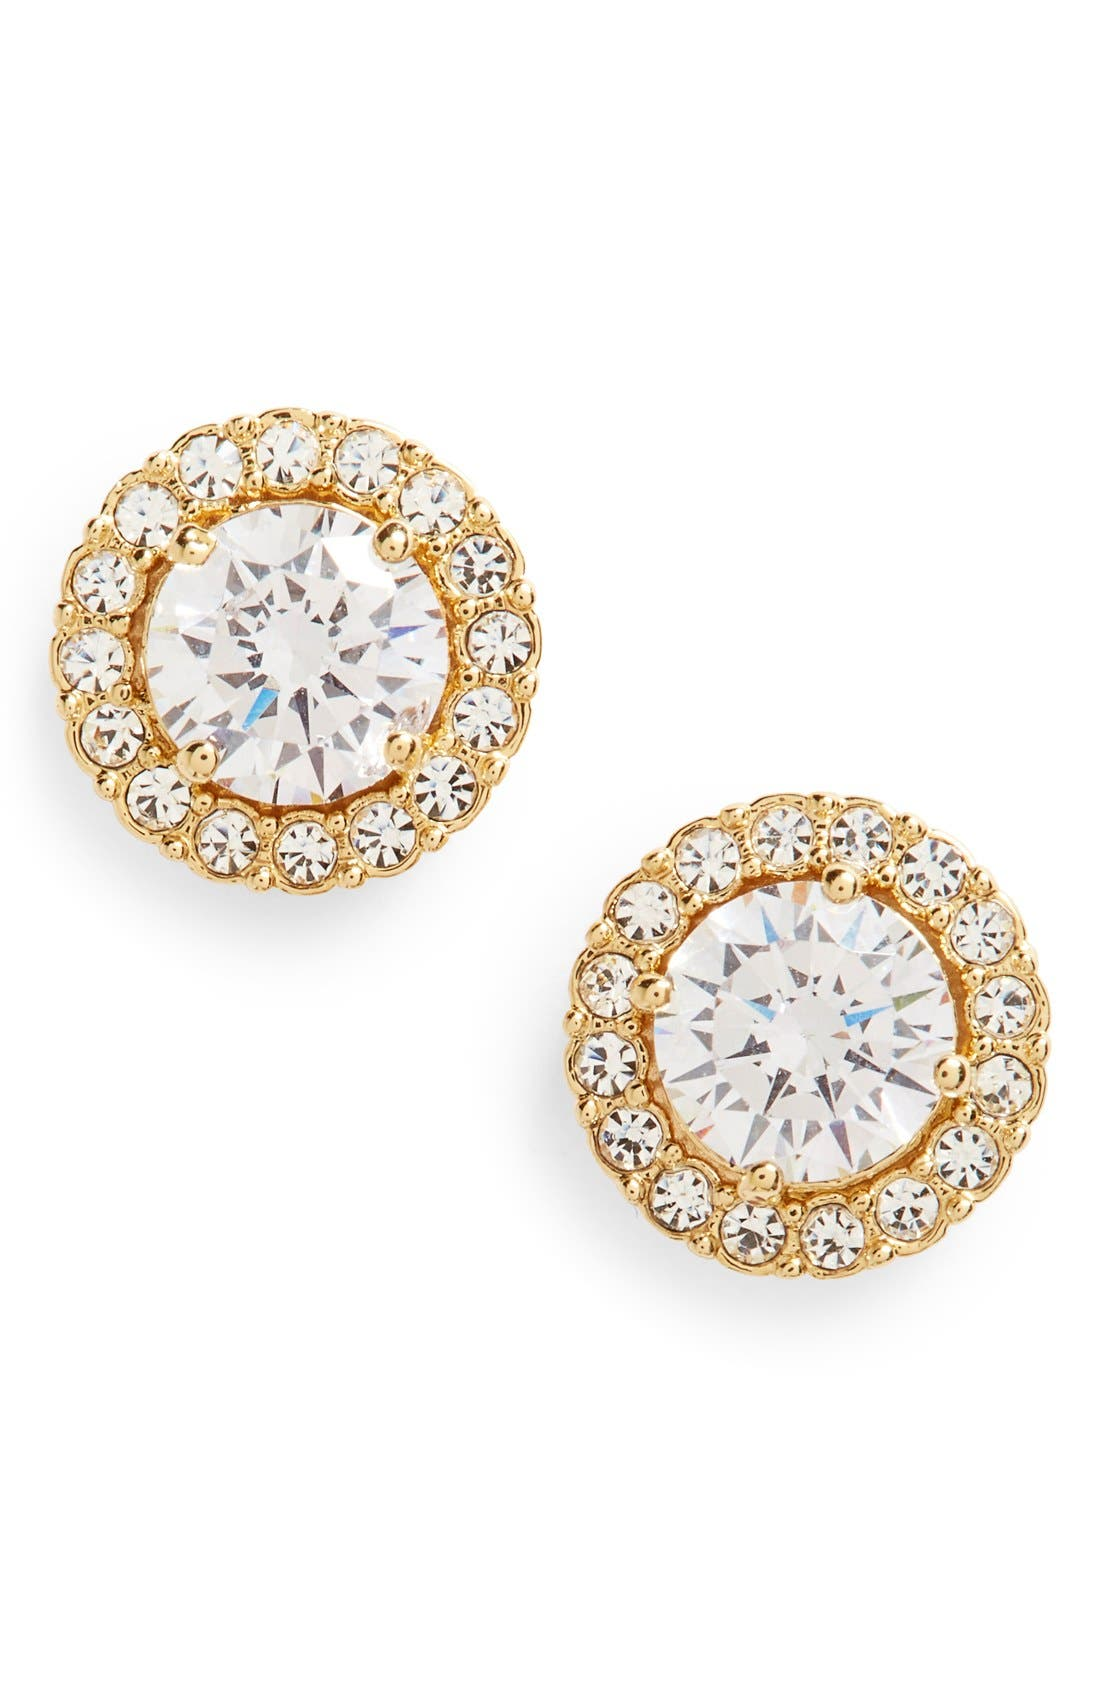 Main Image - Nadri Round Cubic Zirconia Stud Earrings